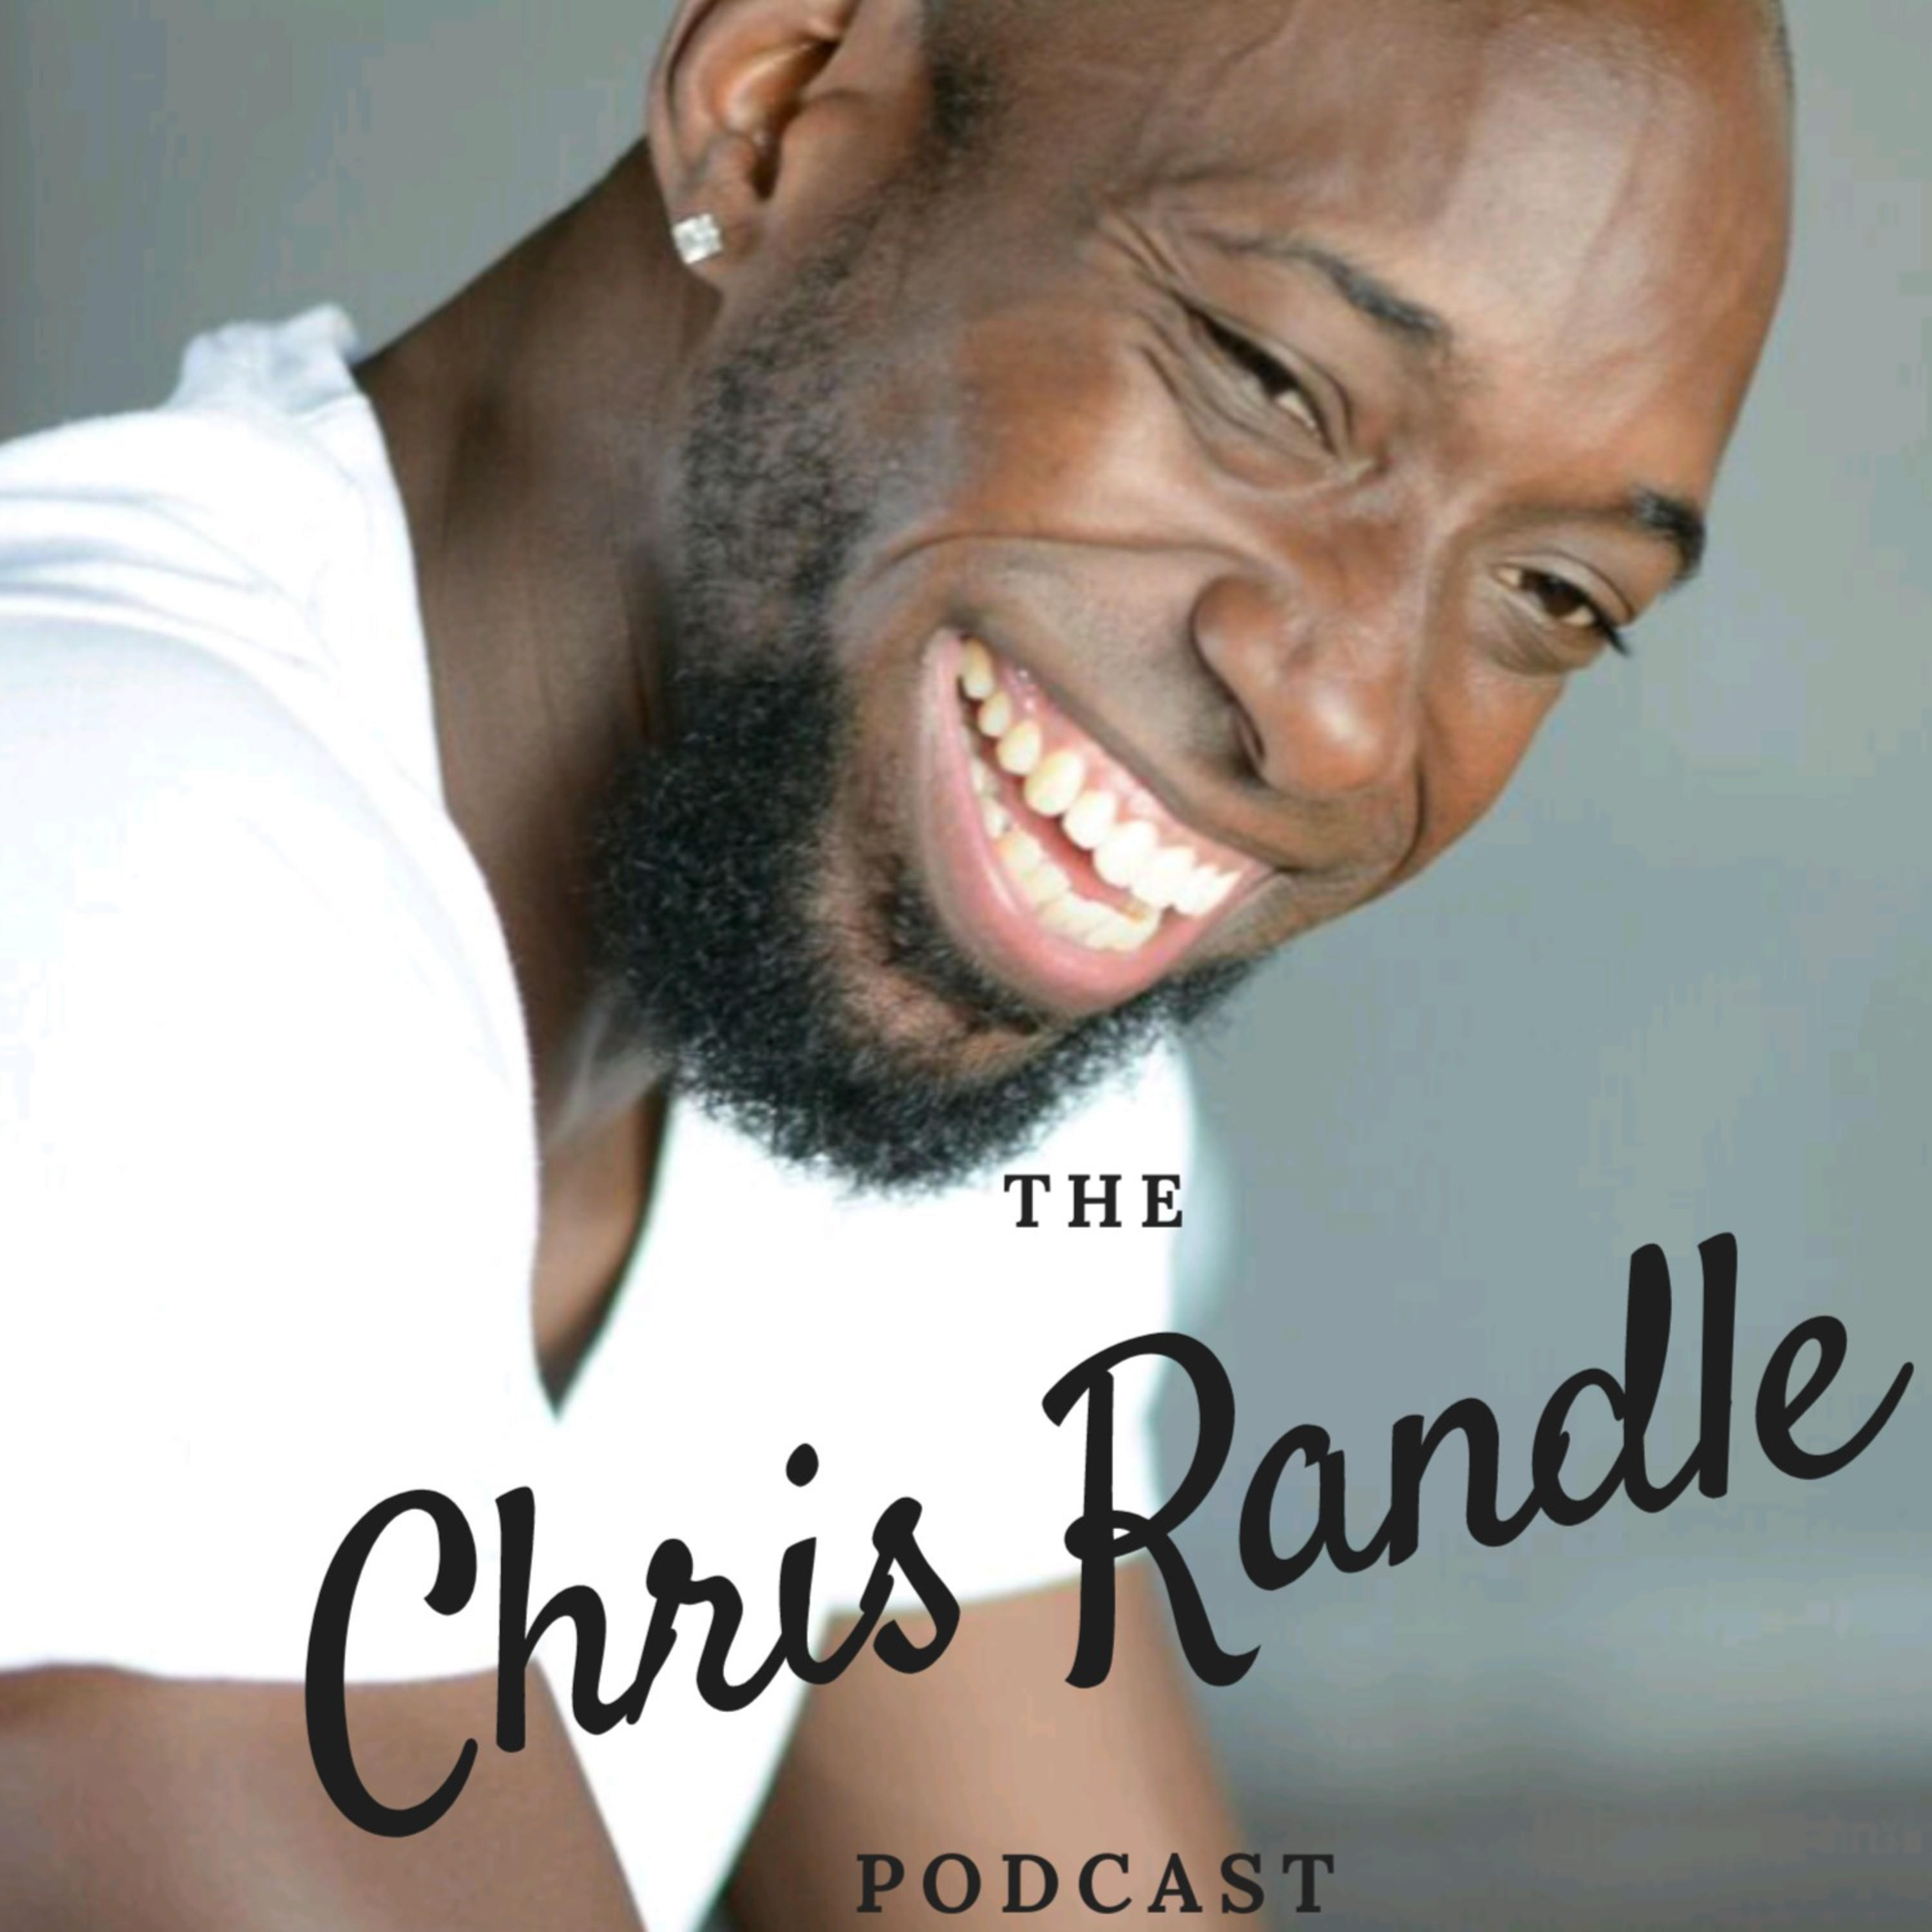 The Chris Randle Podcast